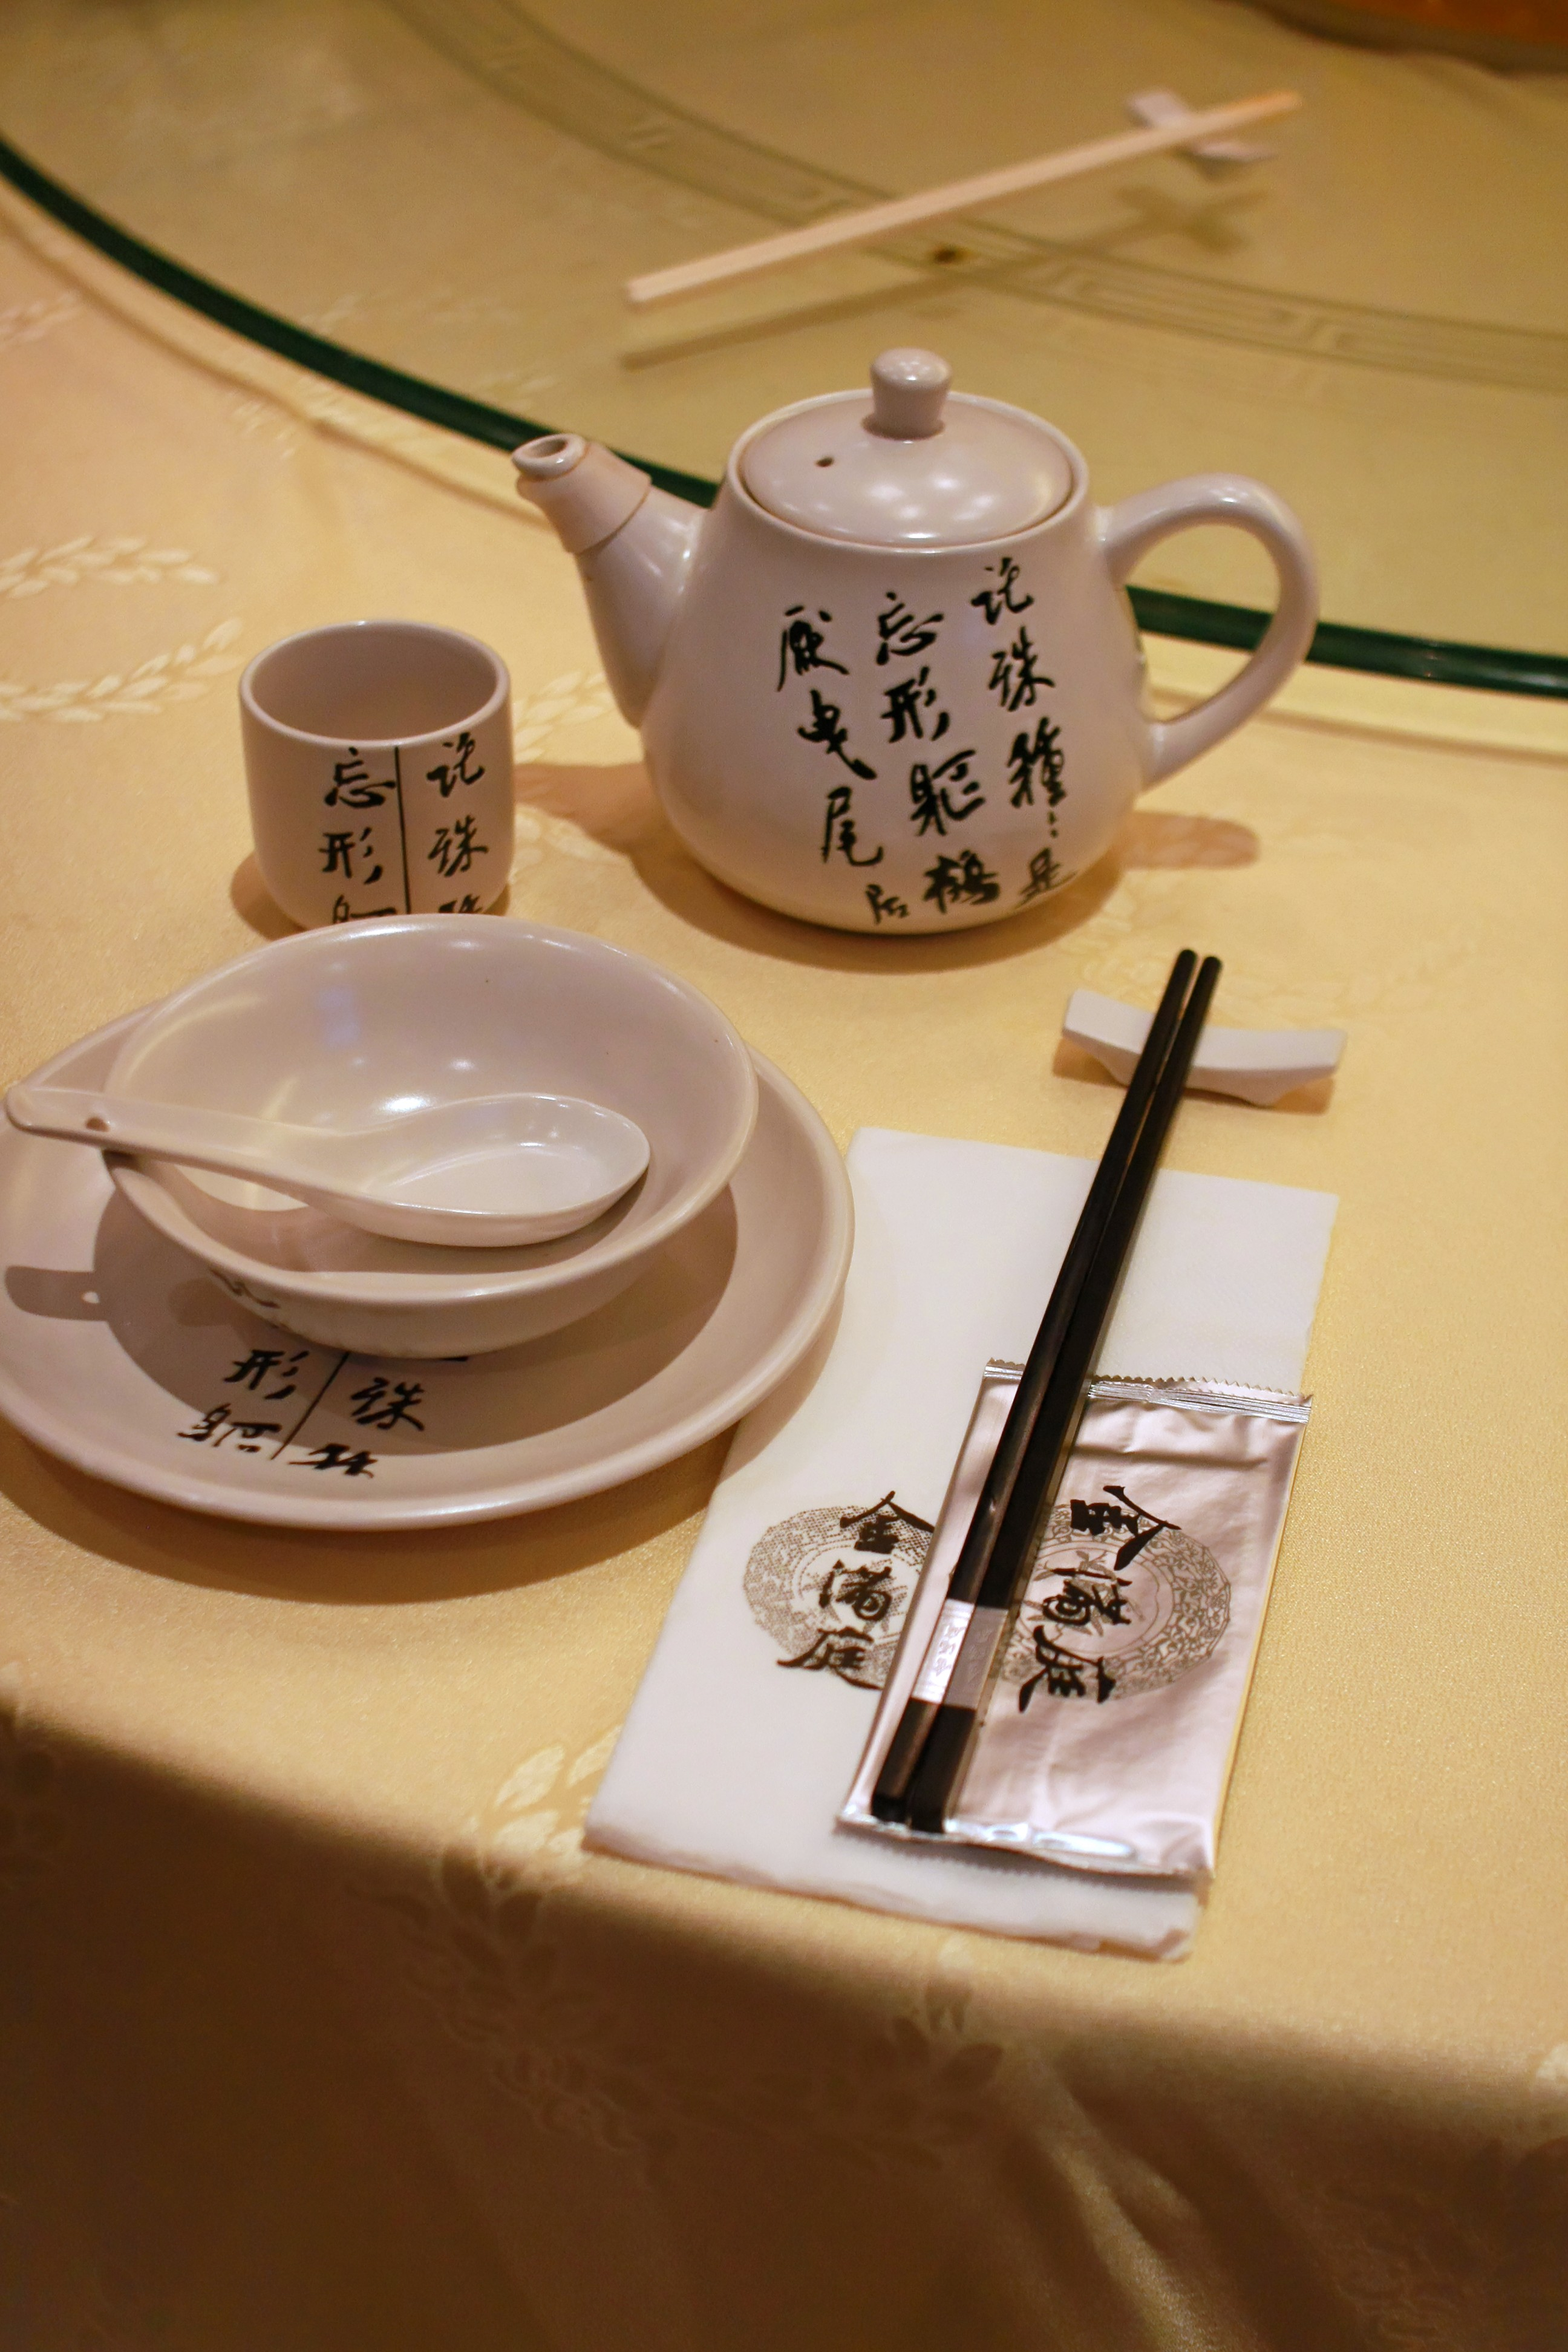 FileChinese Cutlery.jpg & File:Chinese Cutlery.jpg - Wikimedia Commons